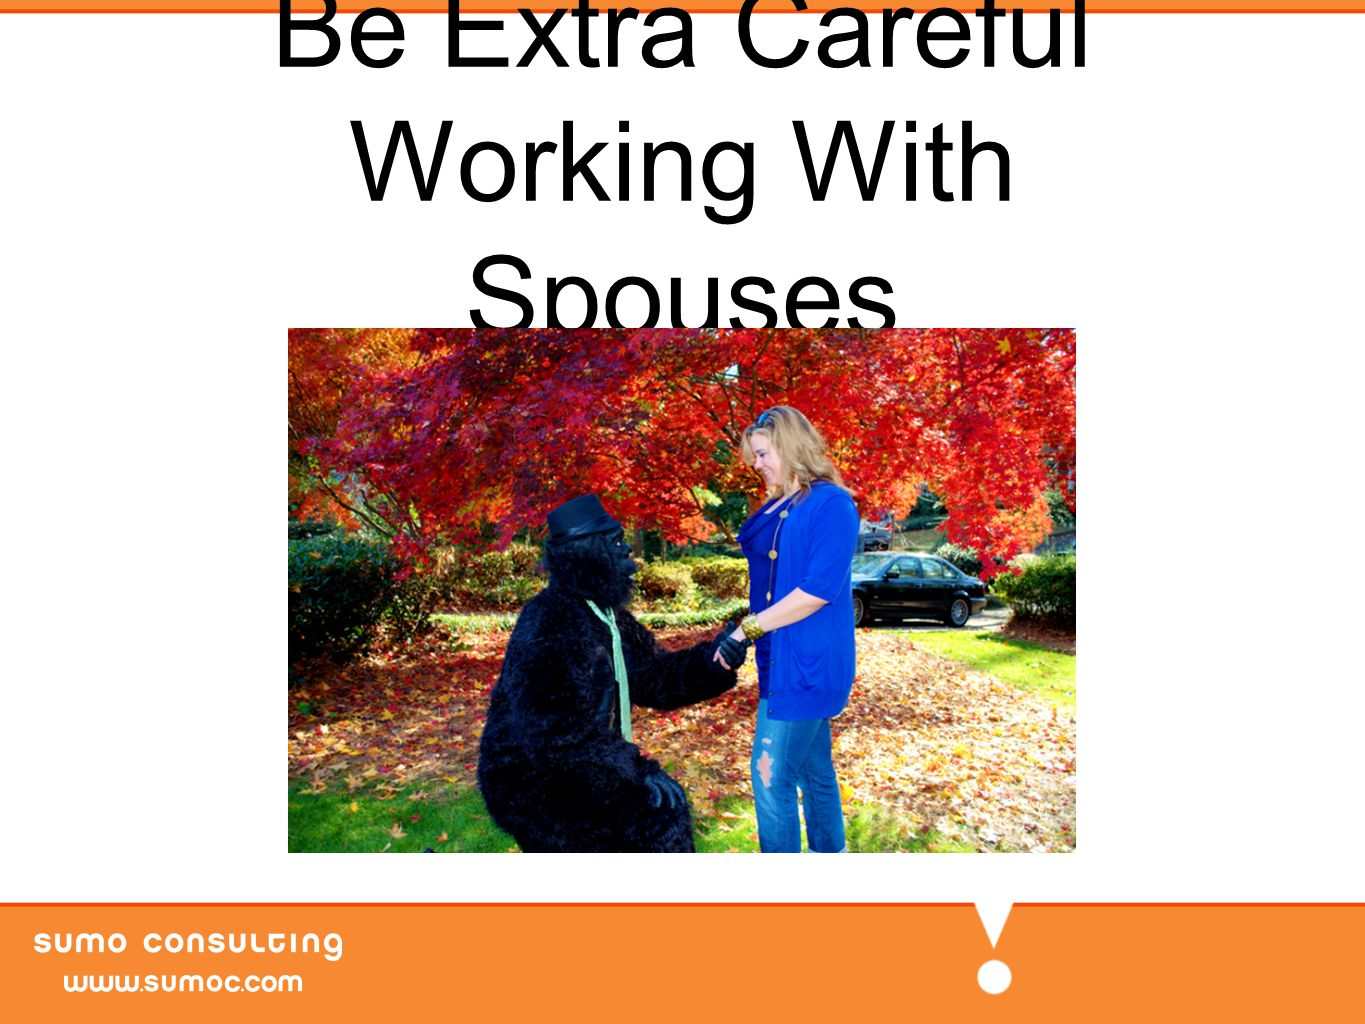 Be Extra Careful Working With Spouses